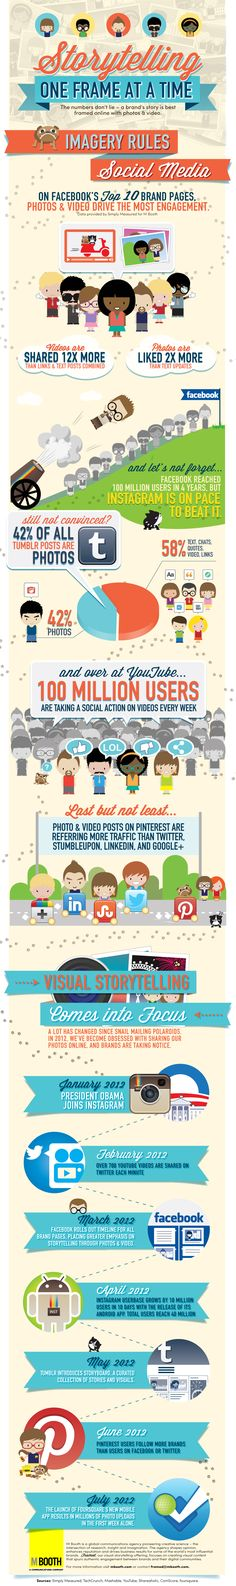 #Storytelling on Social Networks & #socialmedia Infographic